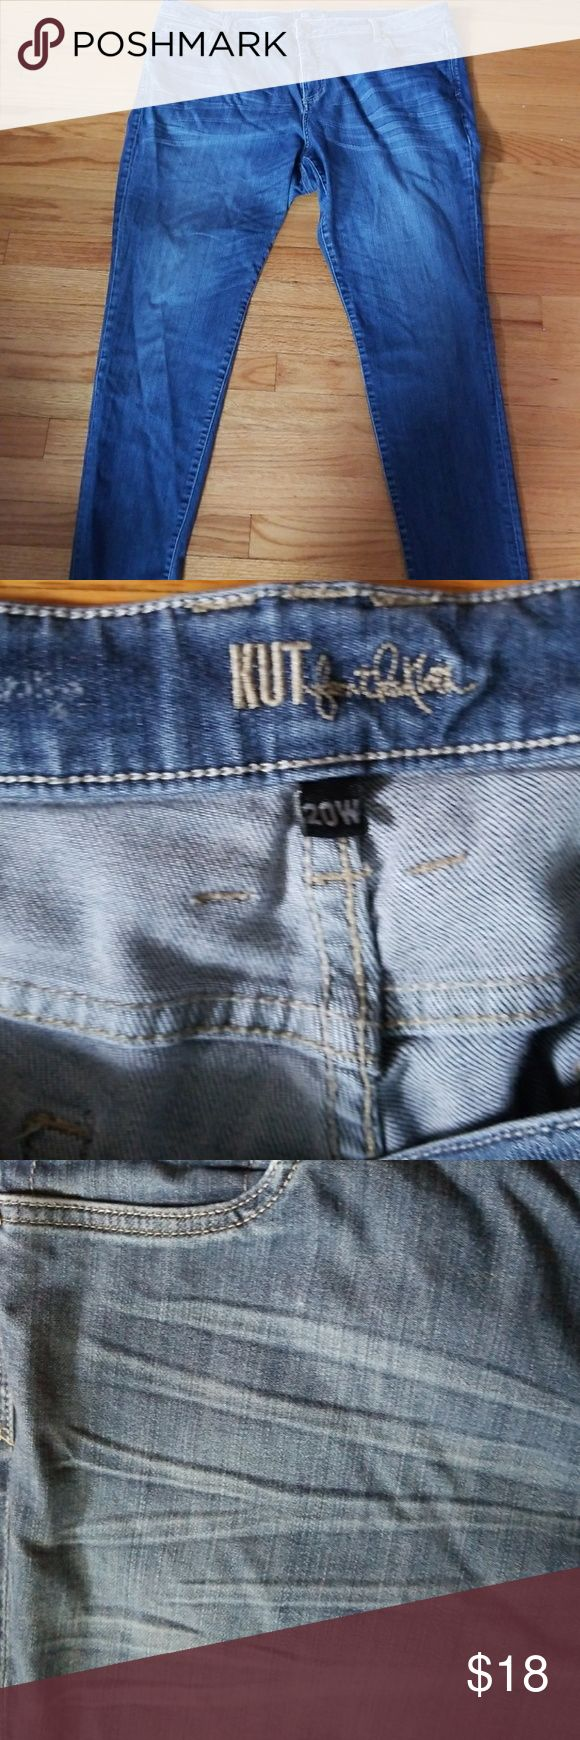 Kut Women's Jeans Relaxed Fit EUC Love these jeans! Seriously, Kut Jeans seem to be the most figure flattering I've found, and these are no exception. Great pair with nice whiskering and fading in the right places. Comfortable without being sloppy. Excellent condition, smoke free home. Kut from the Kloth Jeans